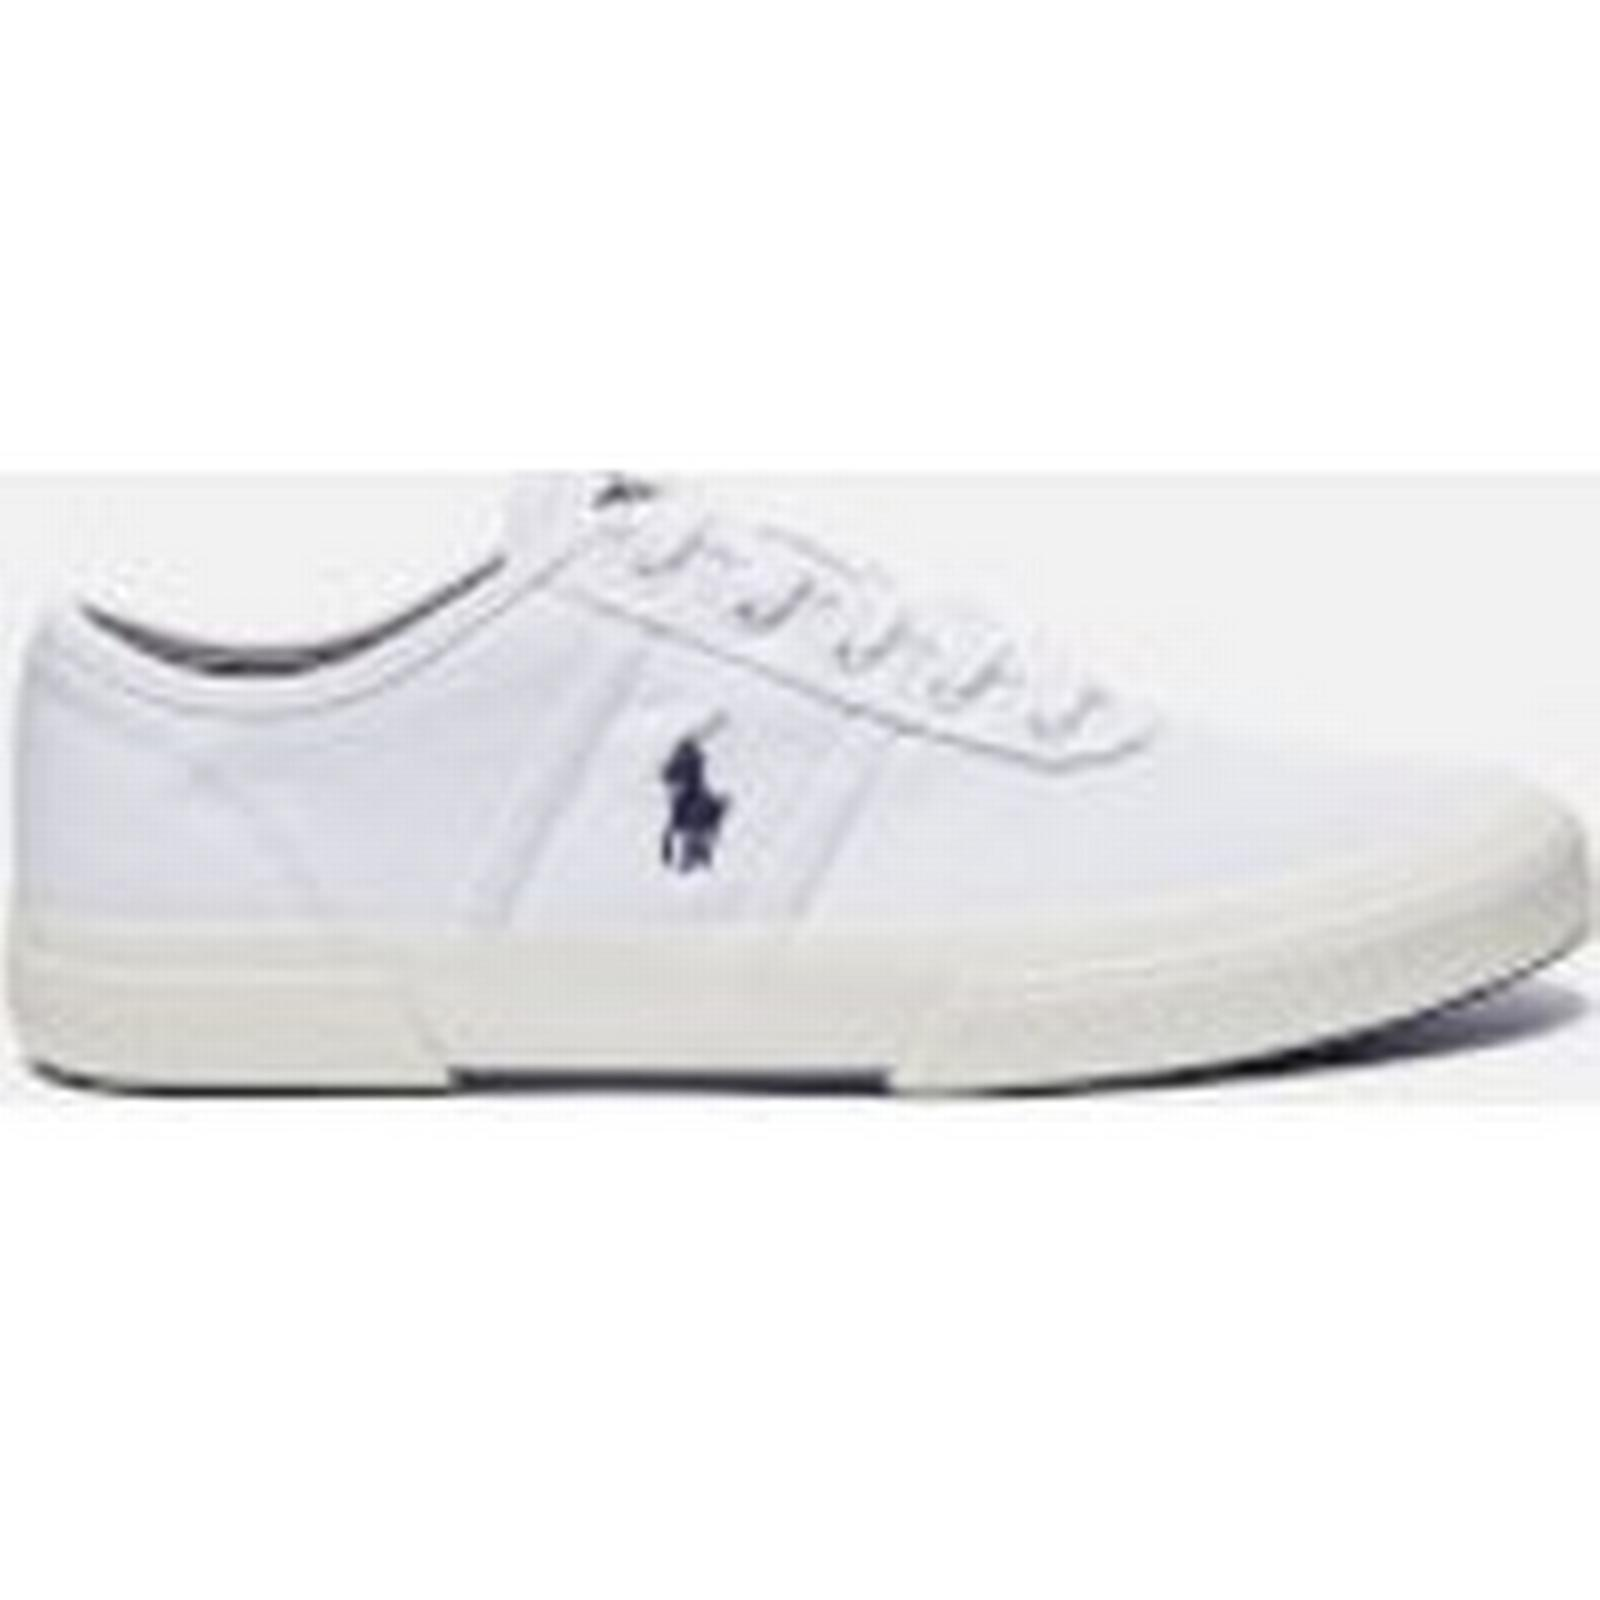 Polo Ralph Lauren Men's Tyrian Canvas Trainers UK - Pure White - UK Trainers 11 - White 2cfecd